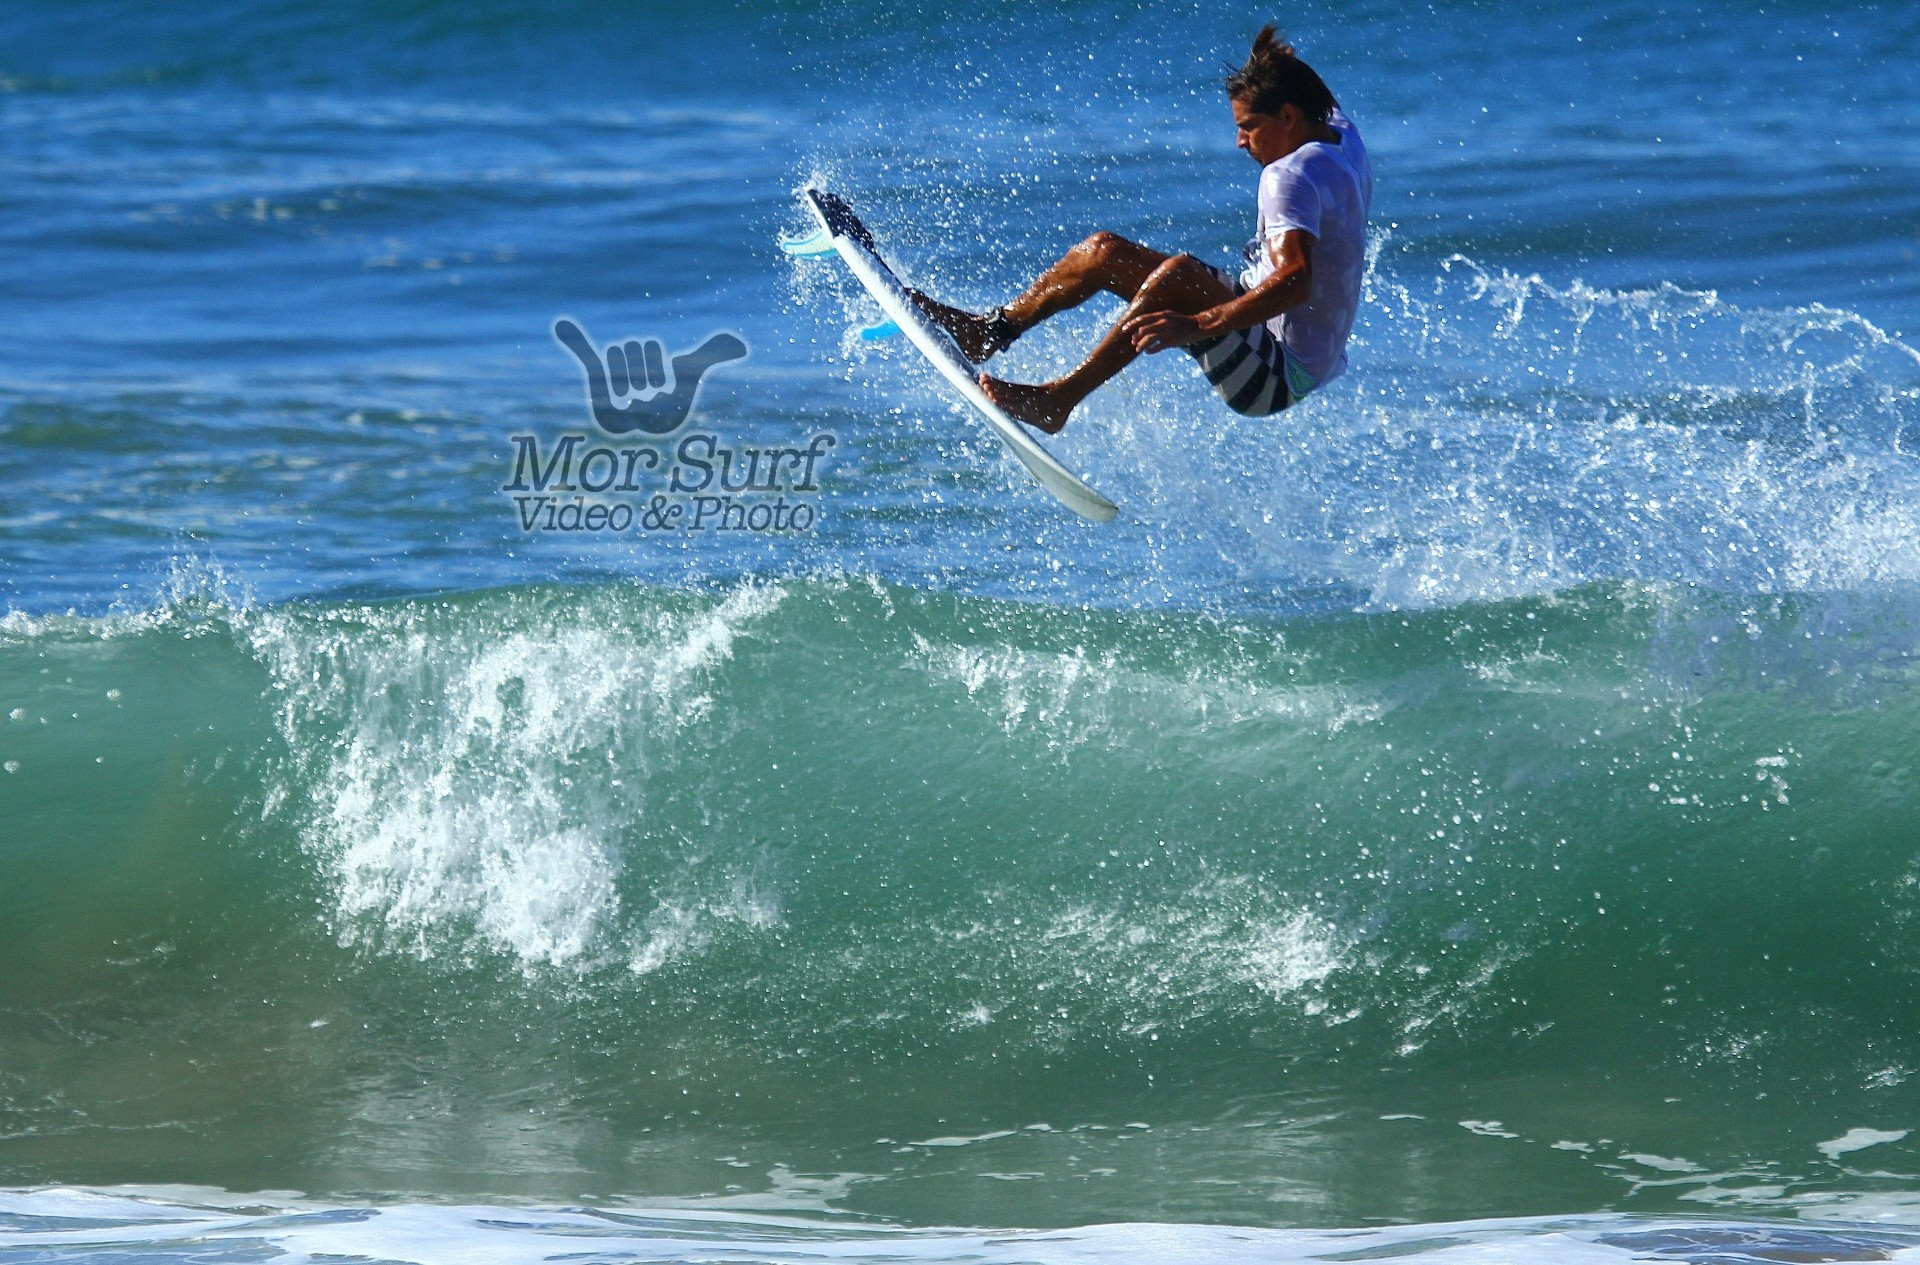 Mor Surf-video's photo of Playa Santa Teresa